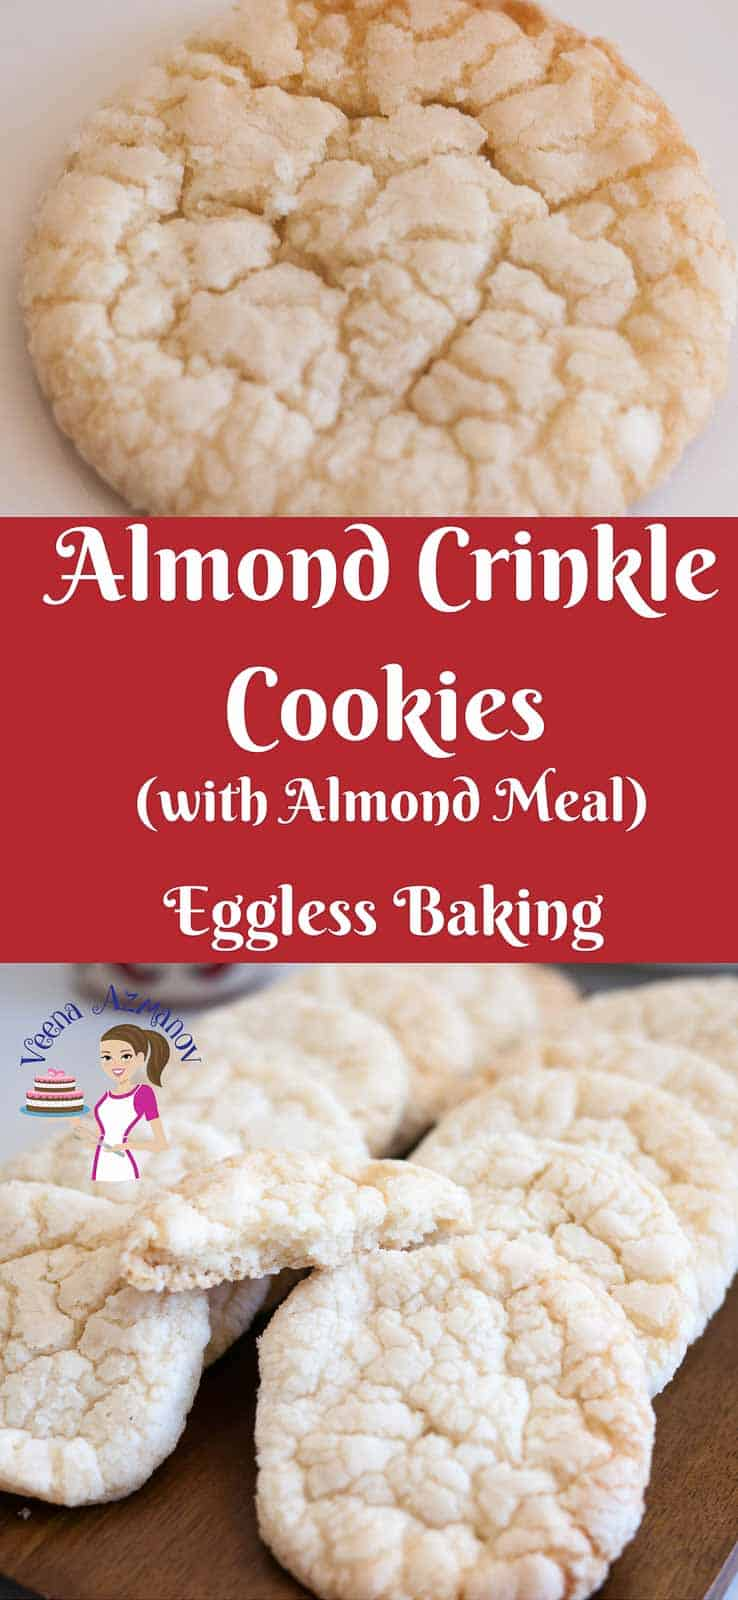 One of the easiest cookie recipes to make are these almond crinkle cookies, made with real almonds.  Simple, easy, effortless and ready in less than 15 minutes. Nothing beats combining ingredients in a bowl, forming balls and baking them.